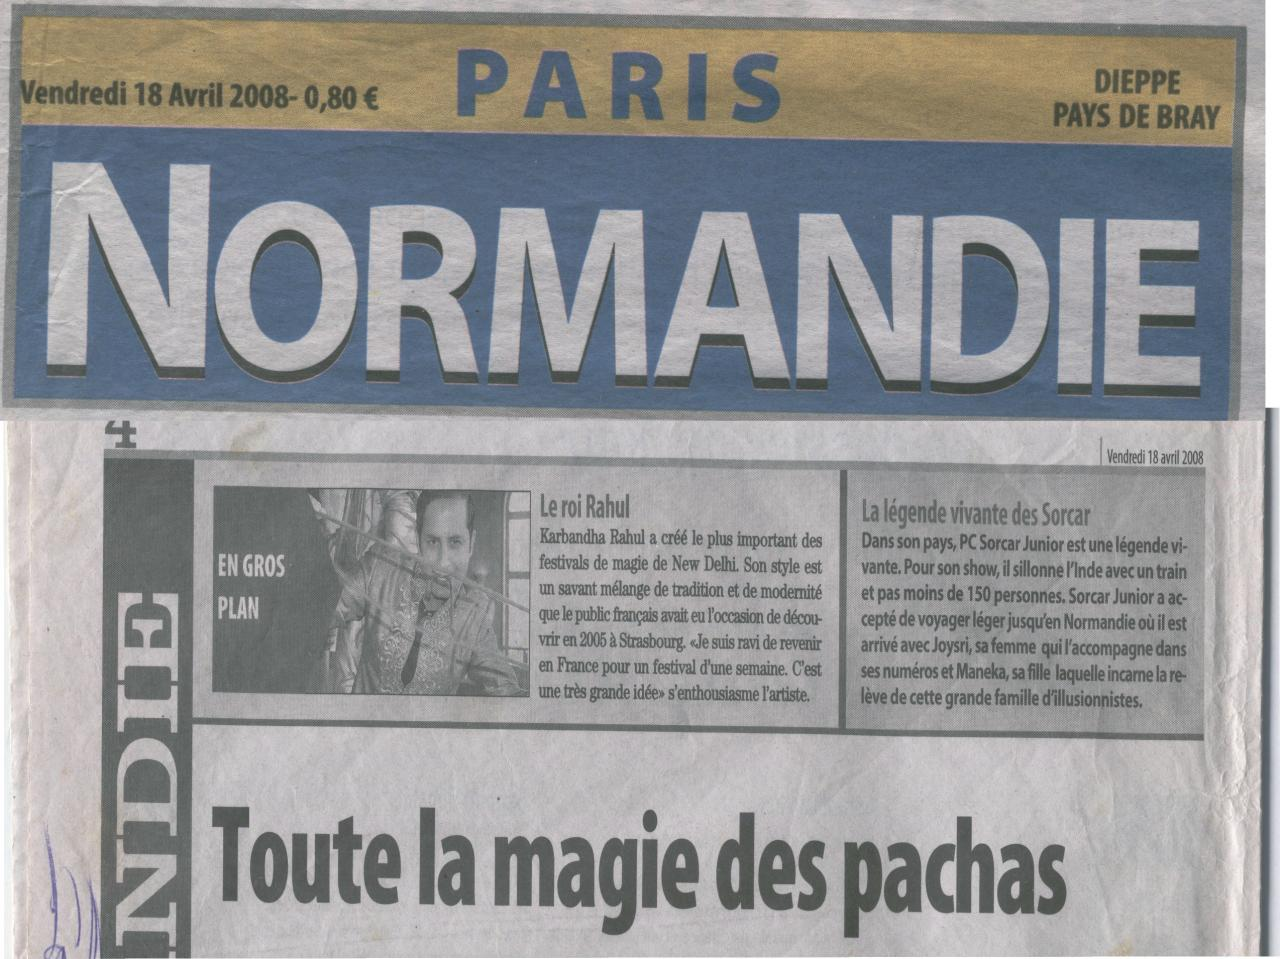 Newspaper of PARIS covering RAHULs MAGIC during his Show in FRANCE